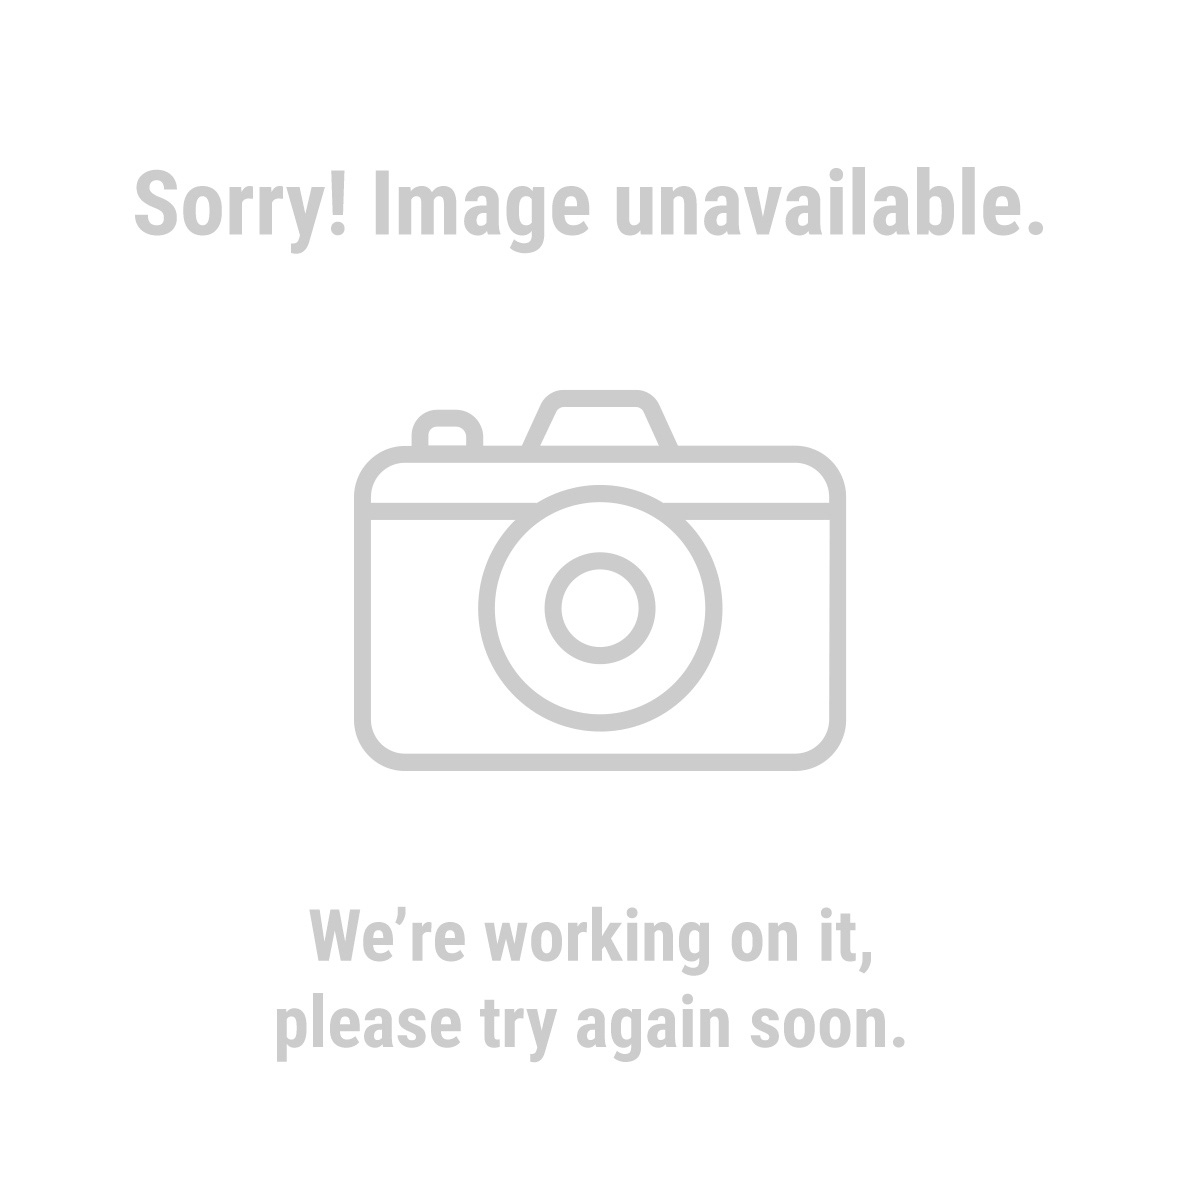 StikTek™ 63243 60 yds. x 1.88 in. Painter's Tape